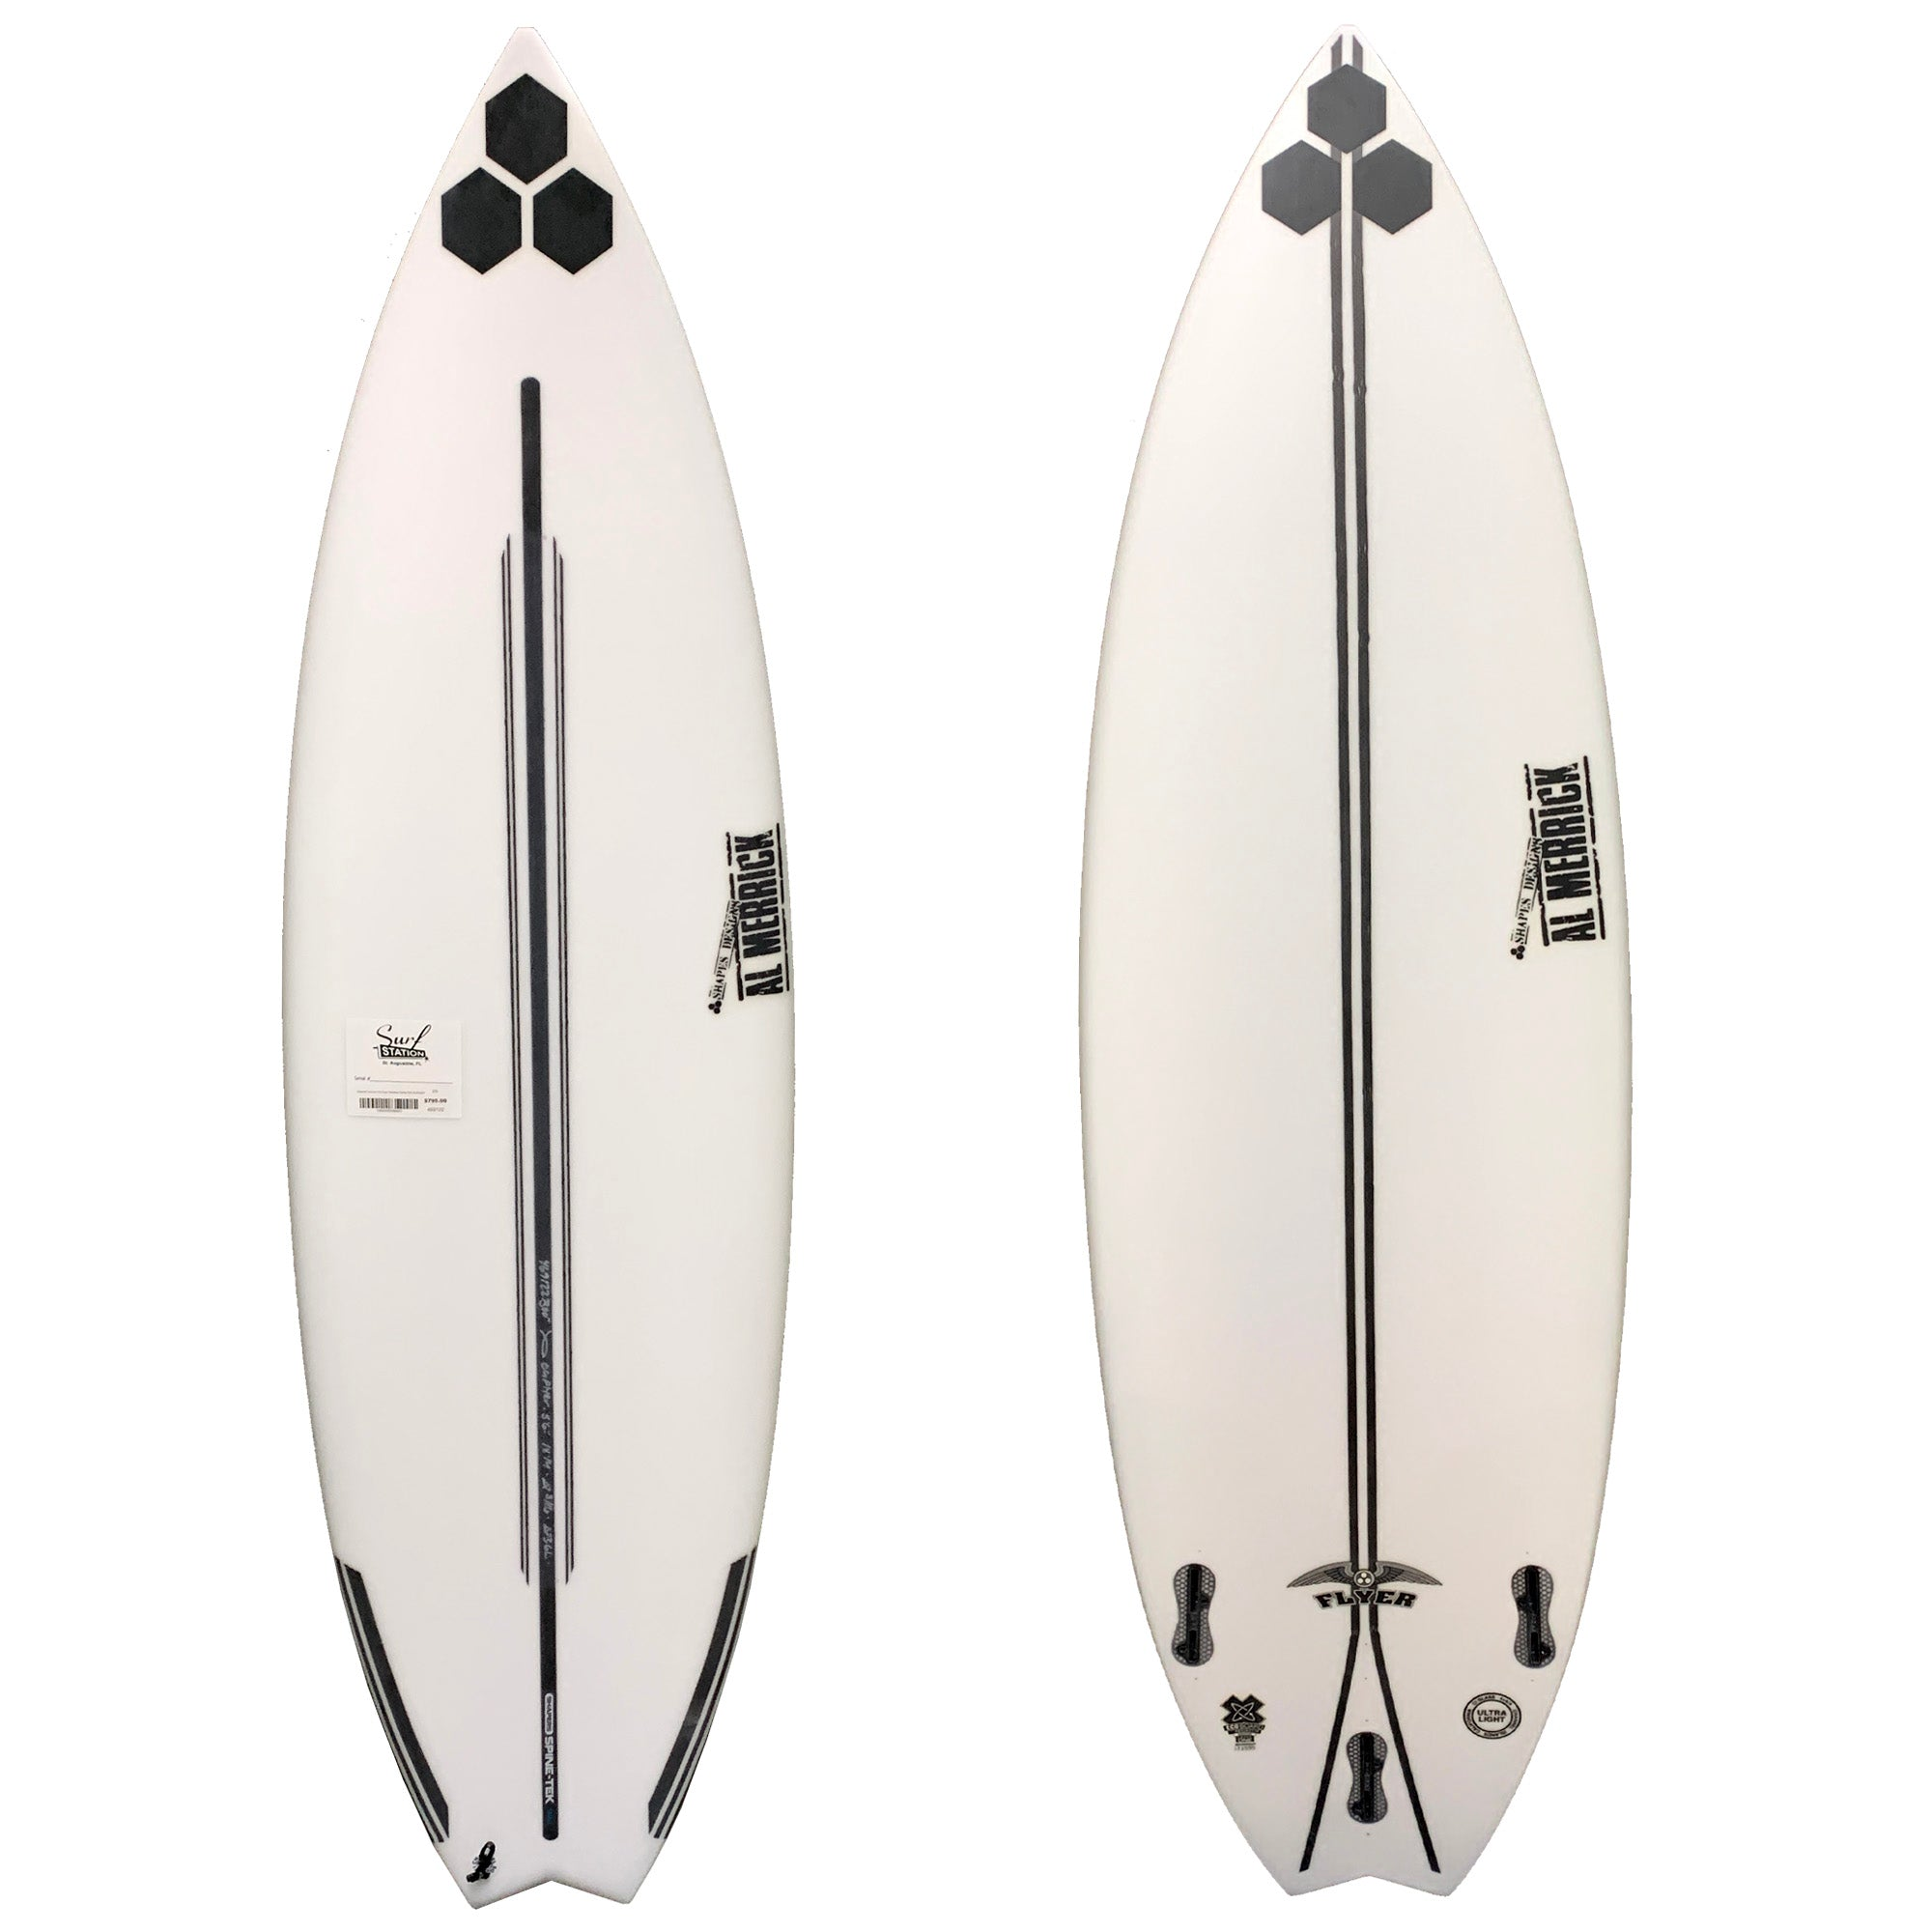 Channel Islands OG Flyer Swallow Spine-Tek Surfboard - FCS II